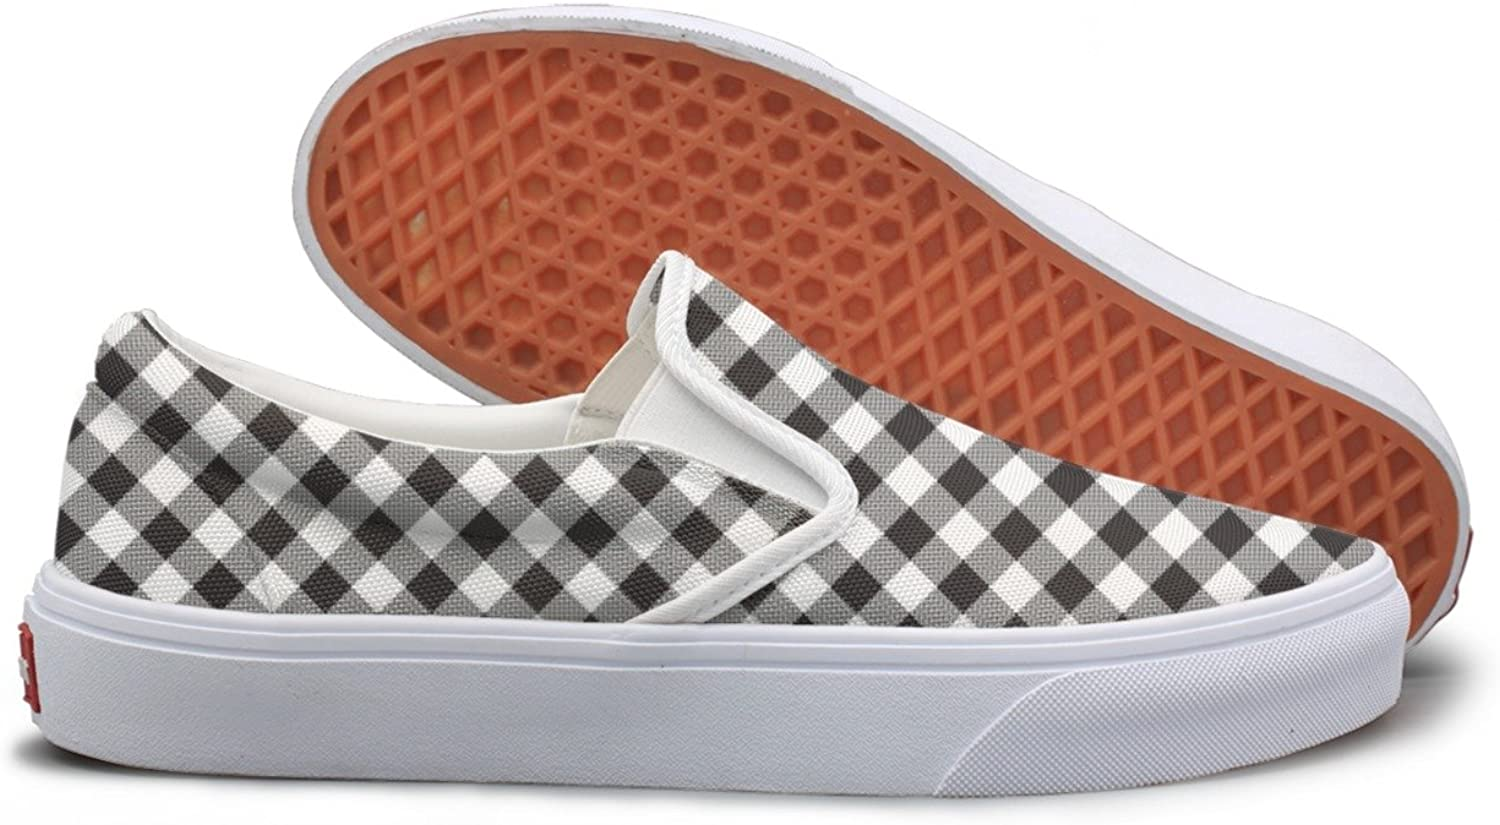 Lalige Black White Checkerboard Texture Women Printed Graphics Canvas Slip-on Travel shoes